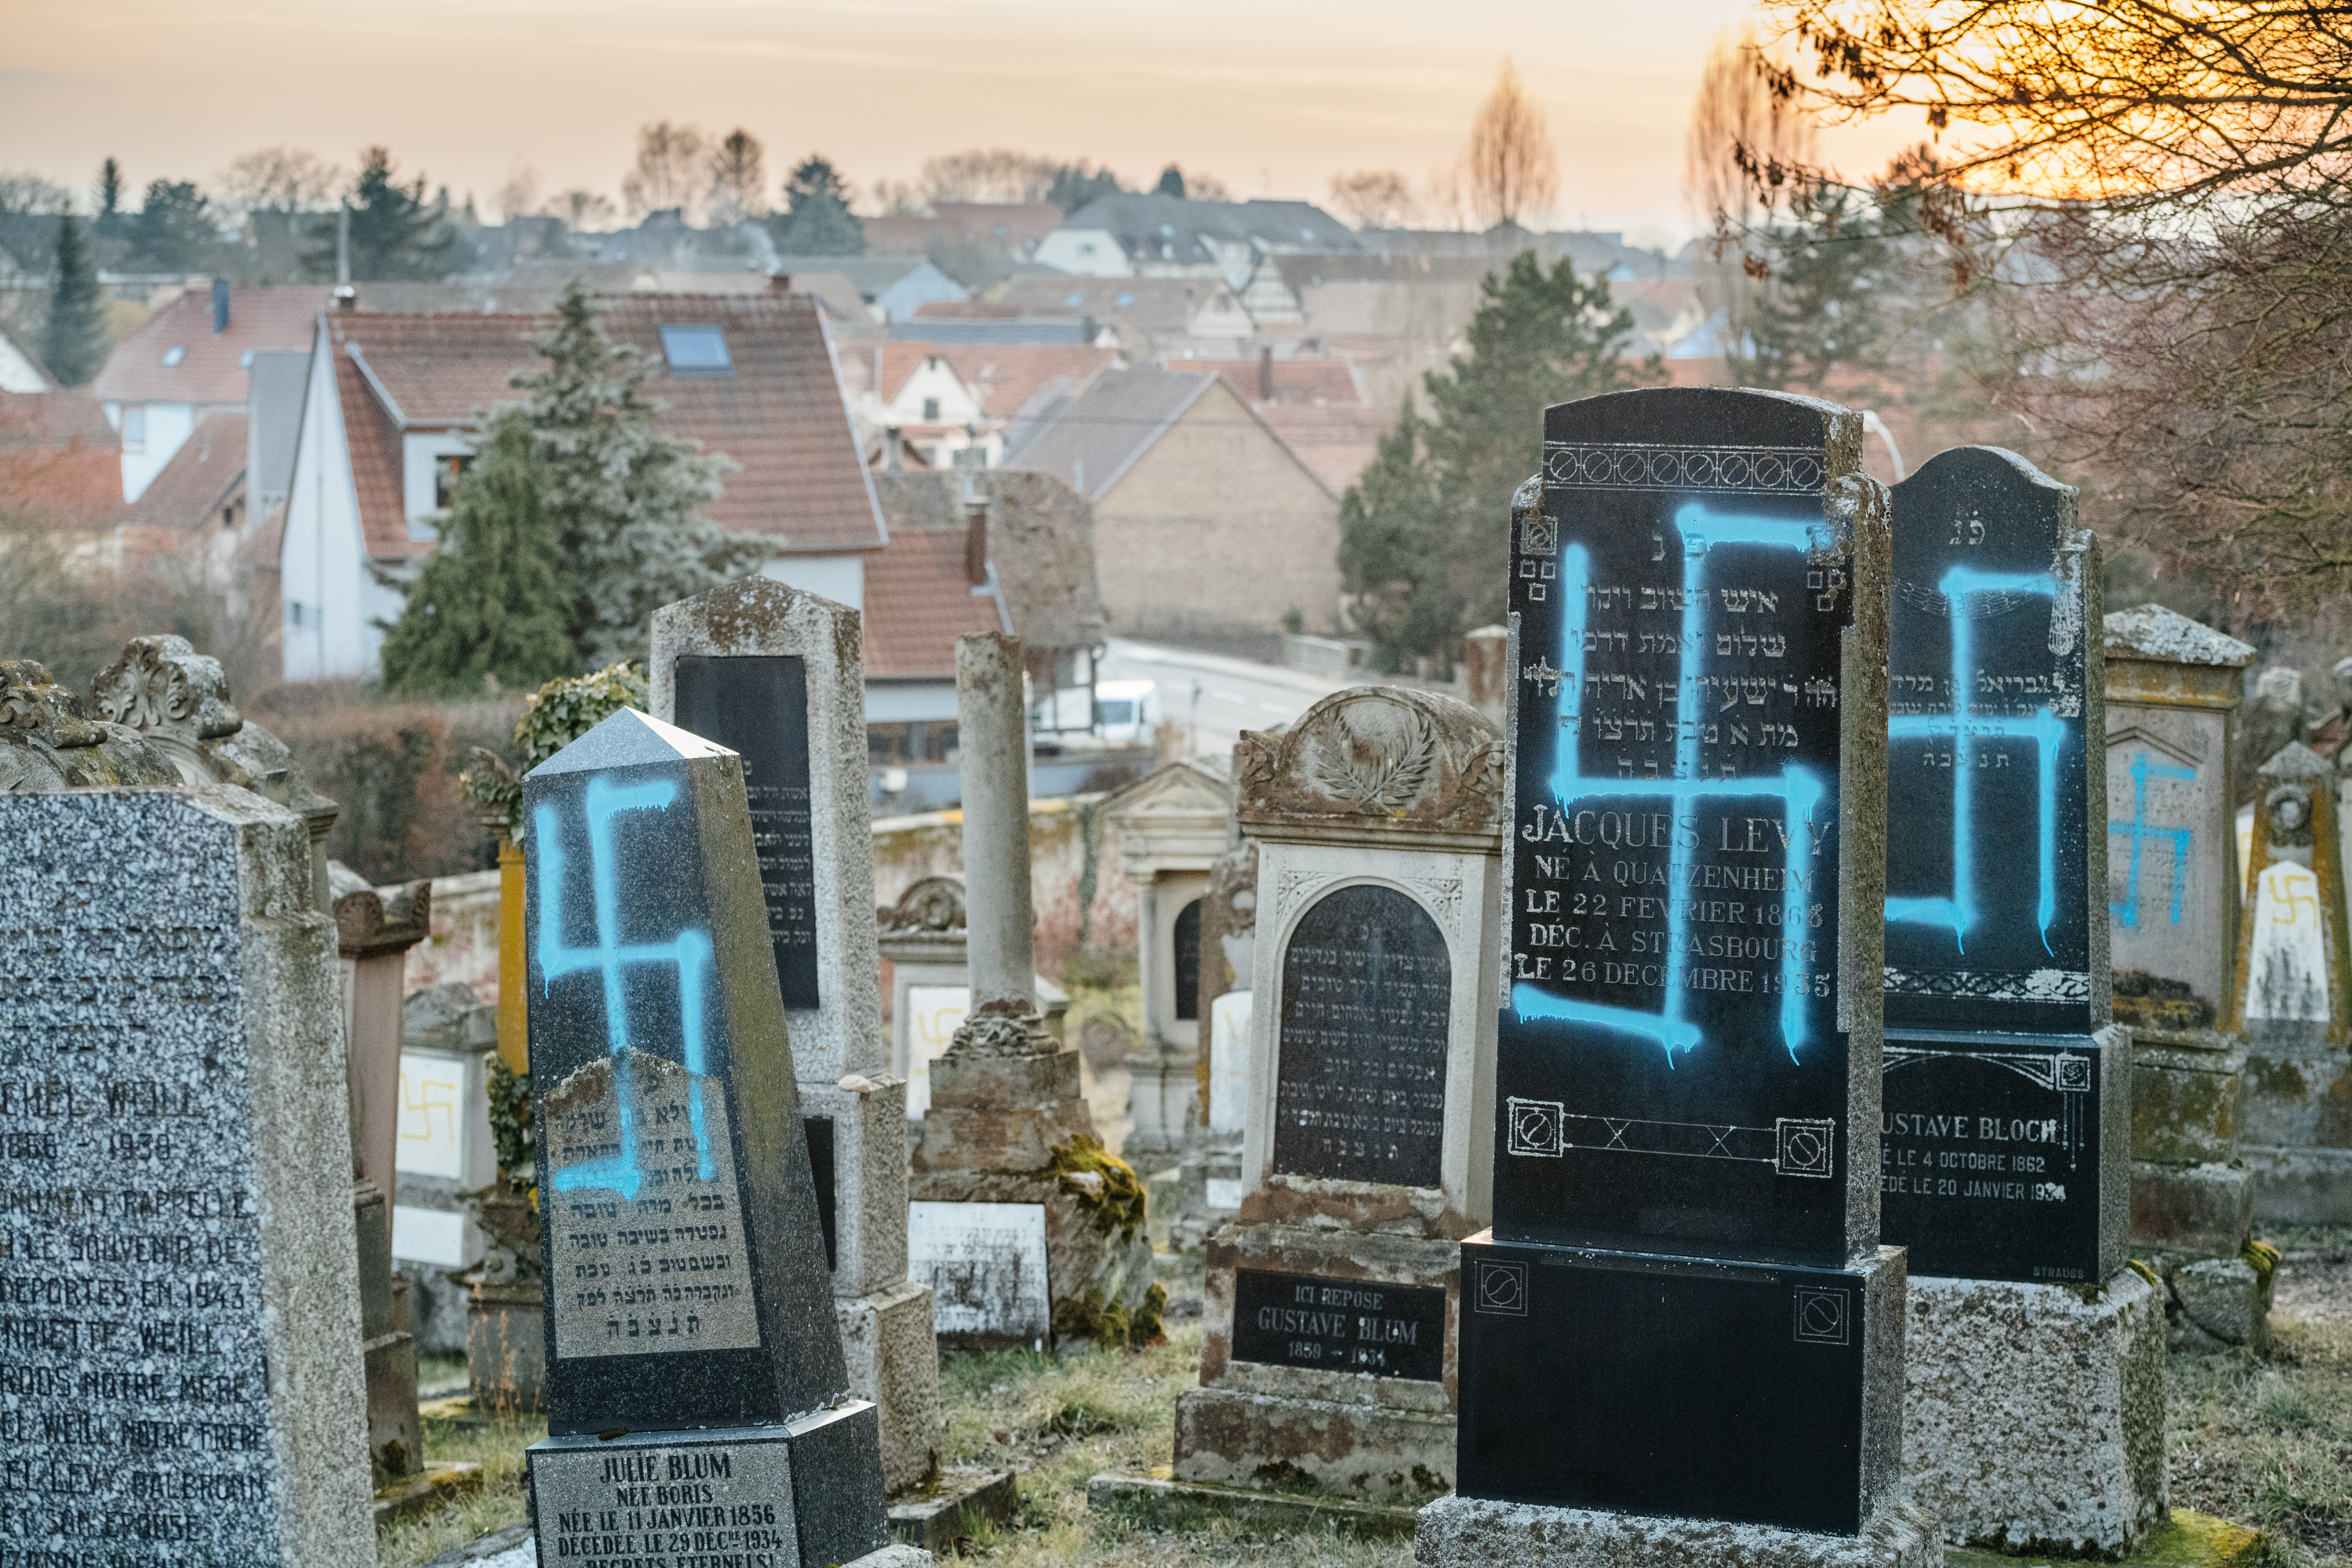 Incidents of antisemitic vandalism like this one in France have many concerned with negative perceptions of Jewish people in Europe. (Shutterstock/Hadrian)